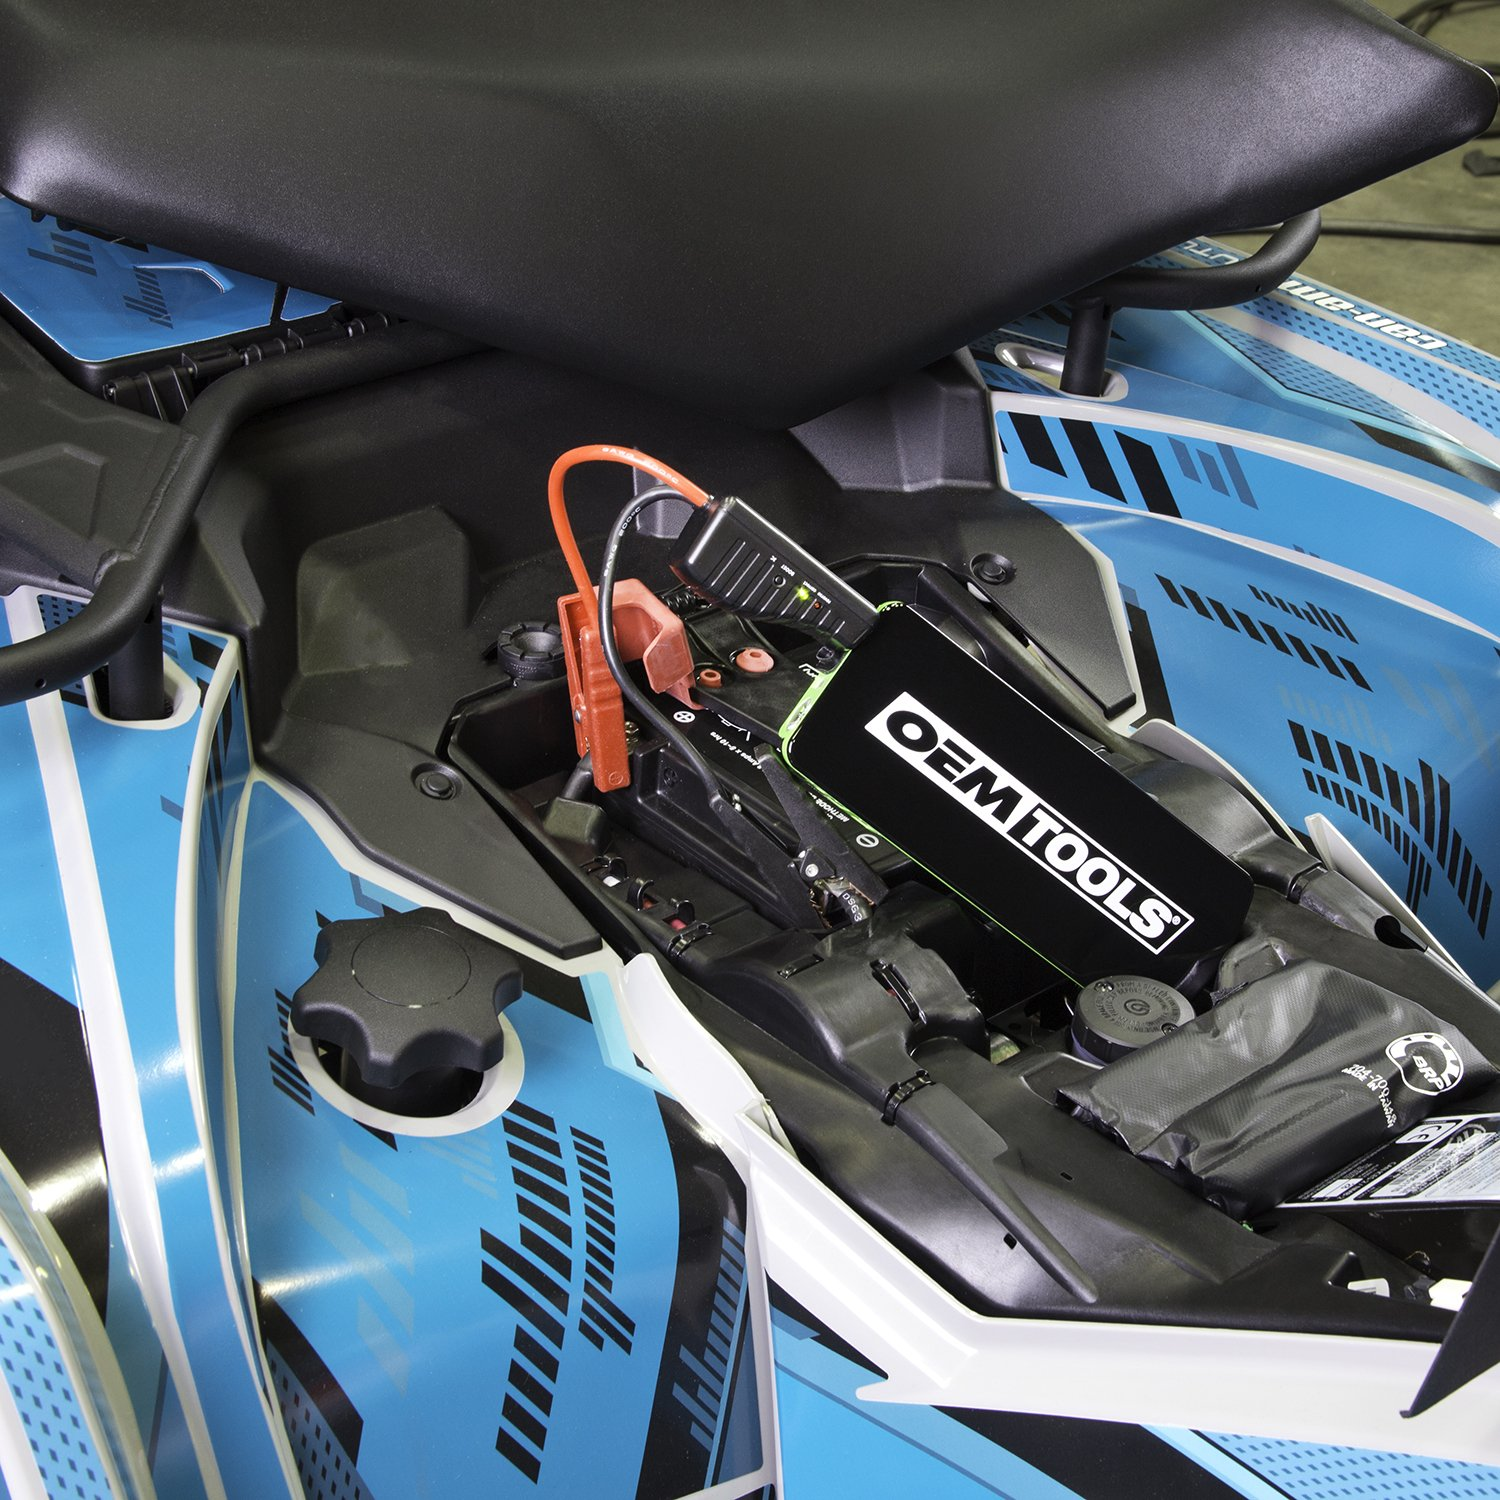 OEMTOOLS 24455 PPS-X Personal Power Source with Smart Jump Cables by OEMTOOLS (Image #9)